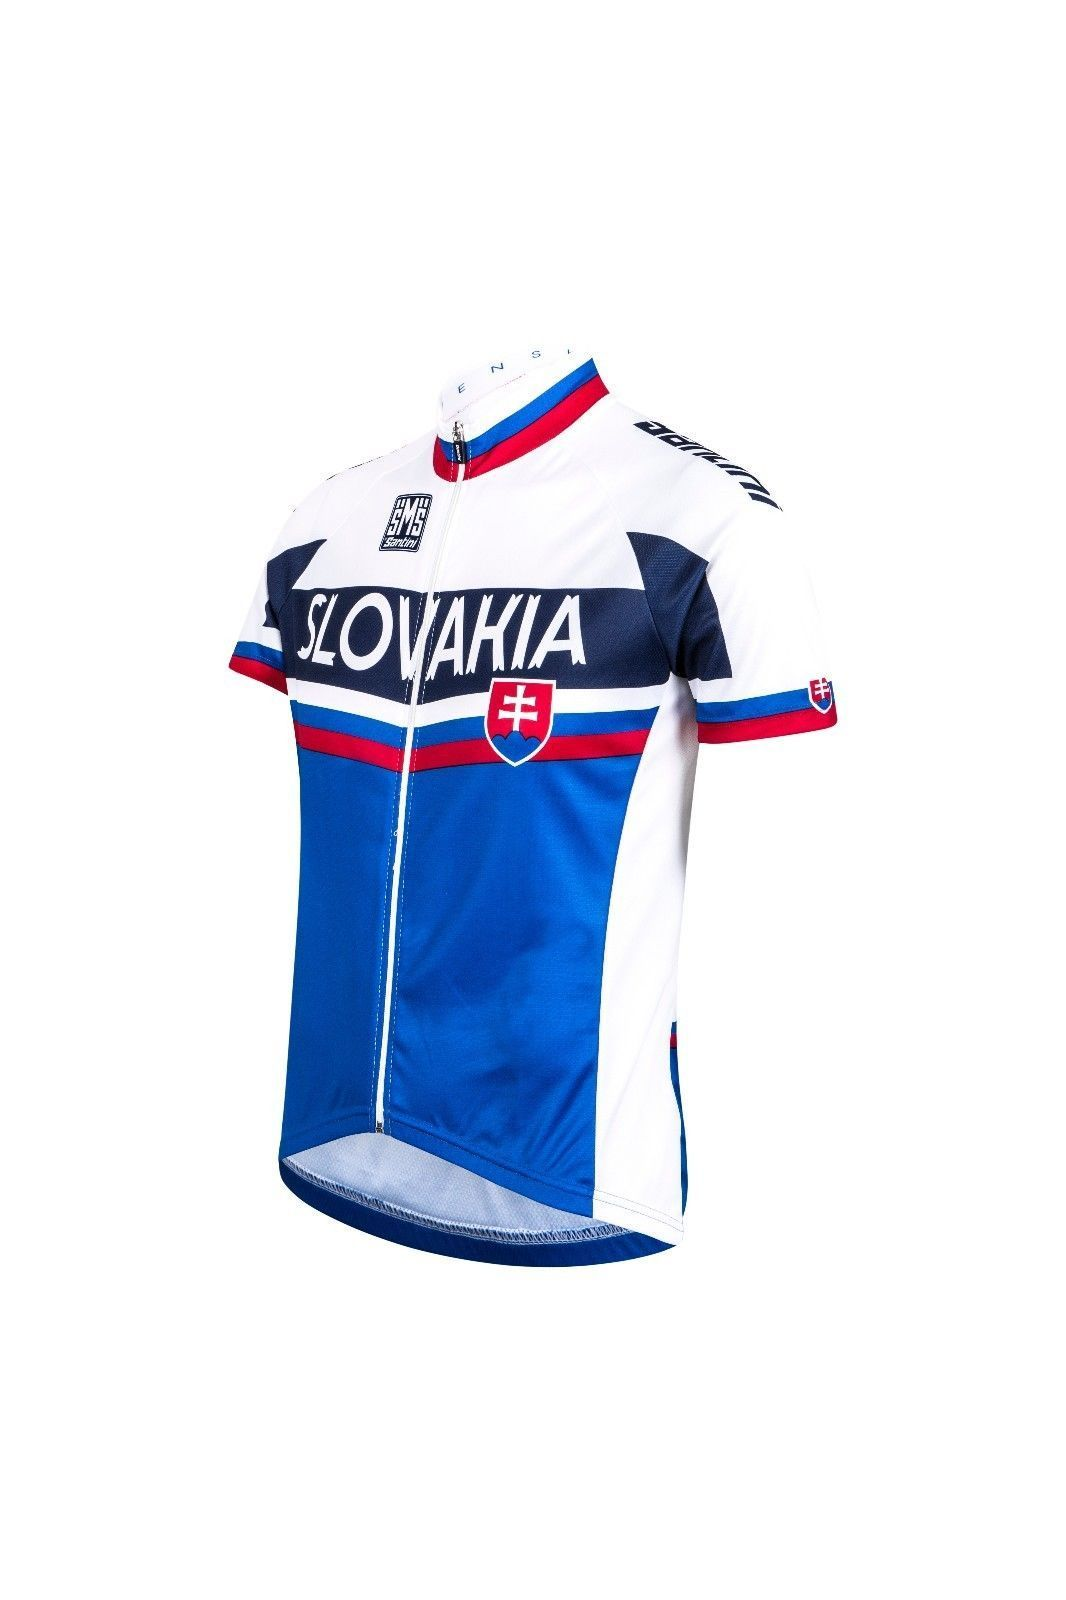 Slovakia National Team Short Sleeve Cycling Jersey Made in Italy by Santini 266ac8190